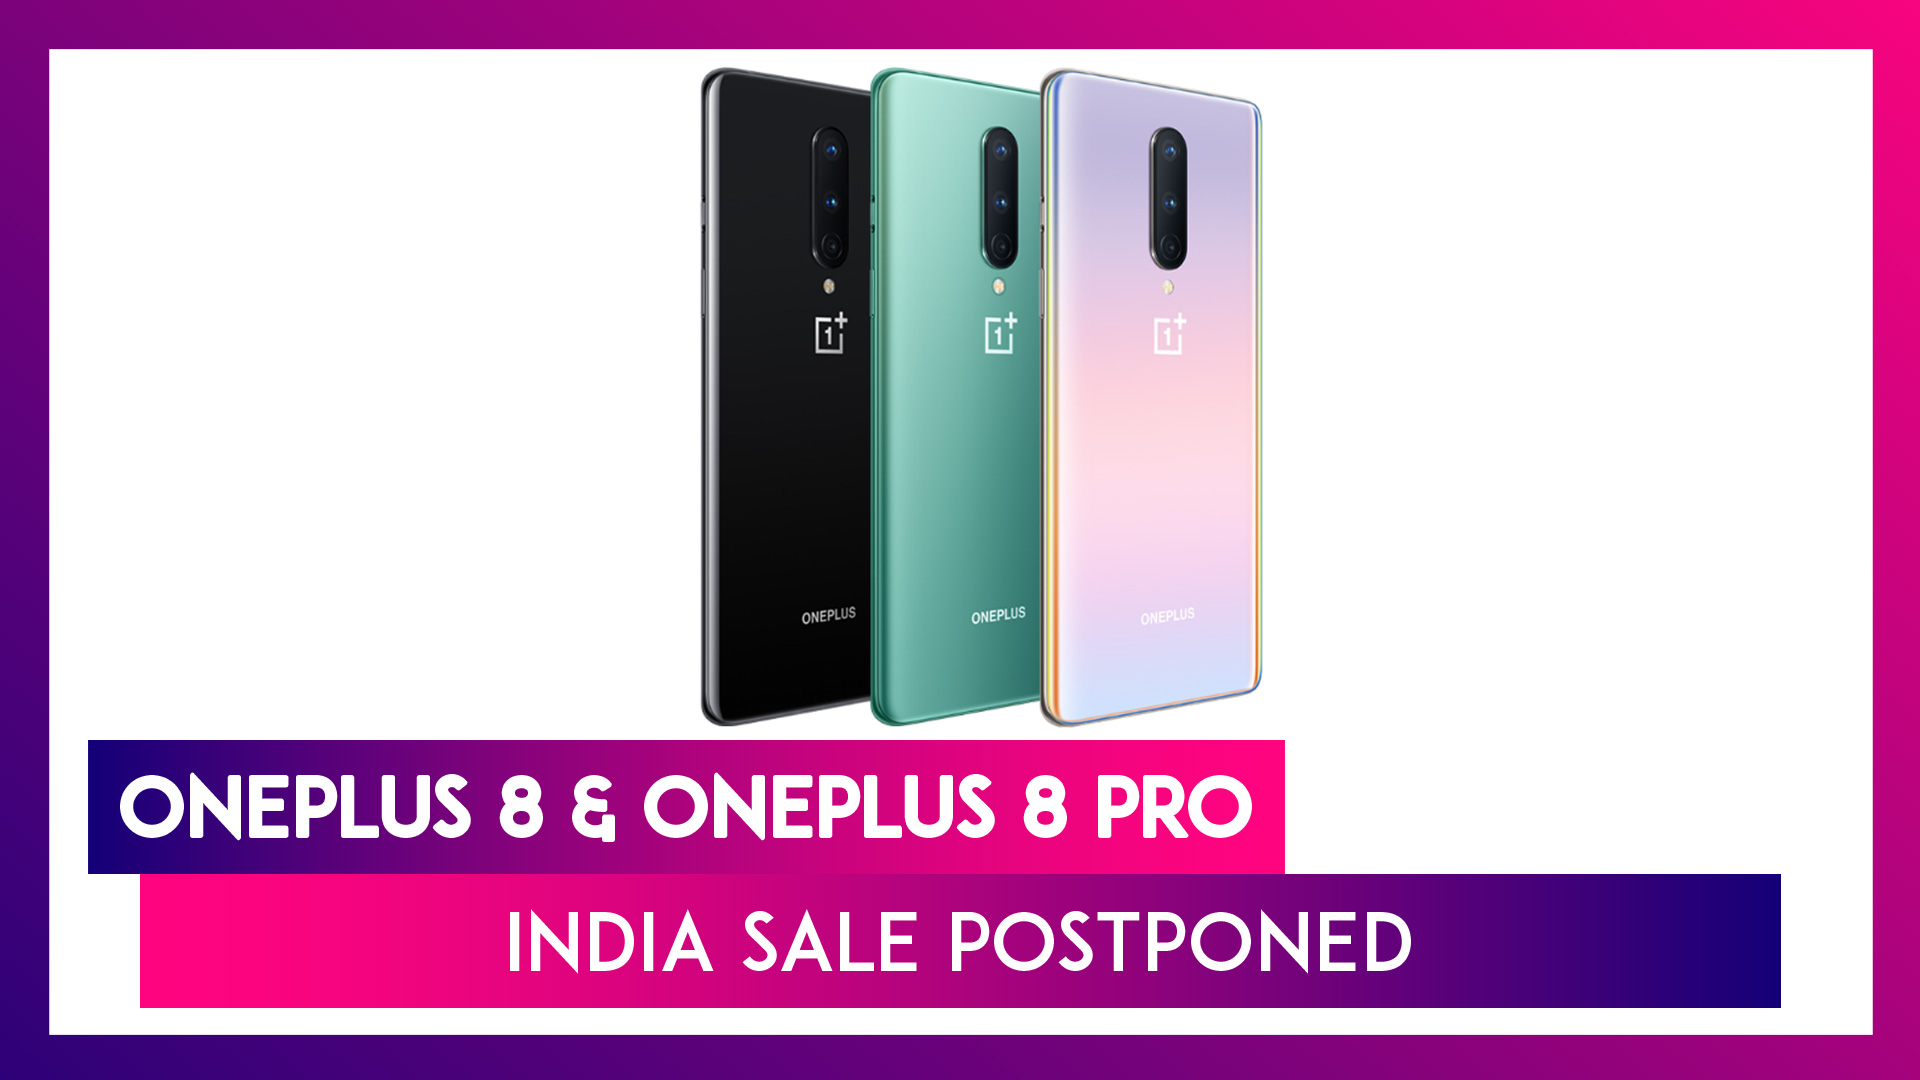 OnePlus 8 & OnePlus 8 Pro India Sale Postponed; Special Limited Sale Details Announced